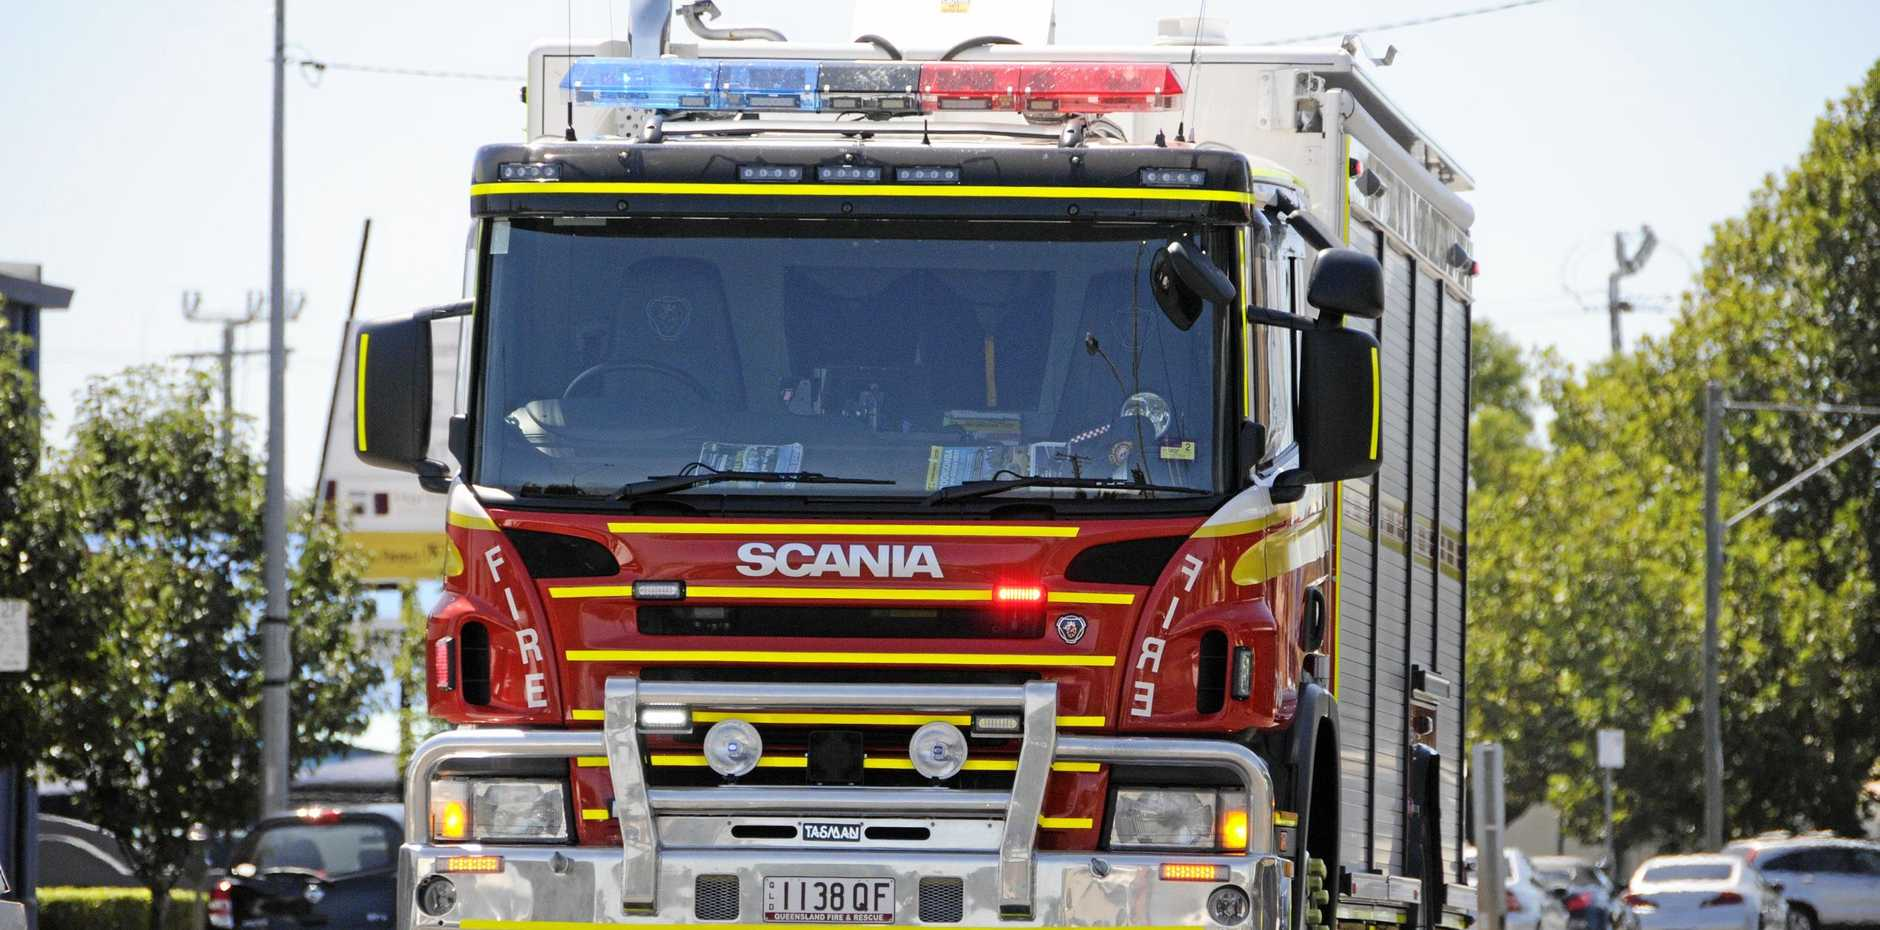 FIRE: Four crews are currently working to contain a fire in Tannum Sands.